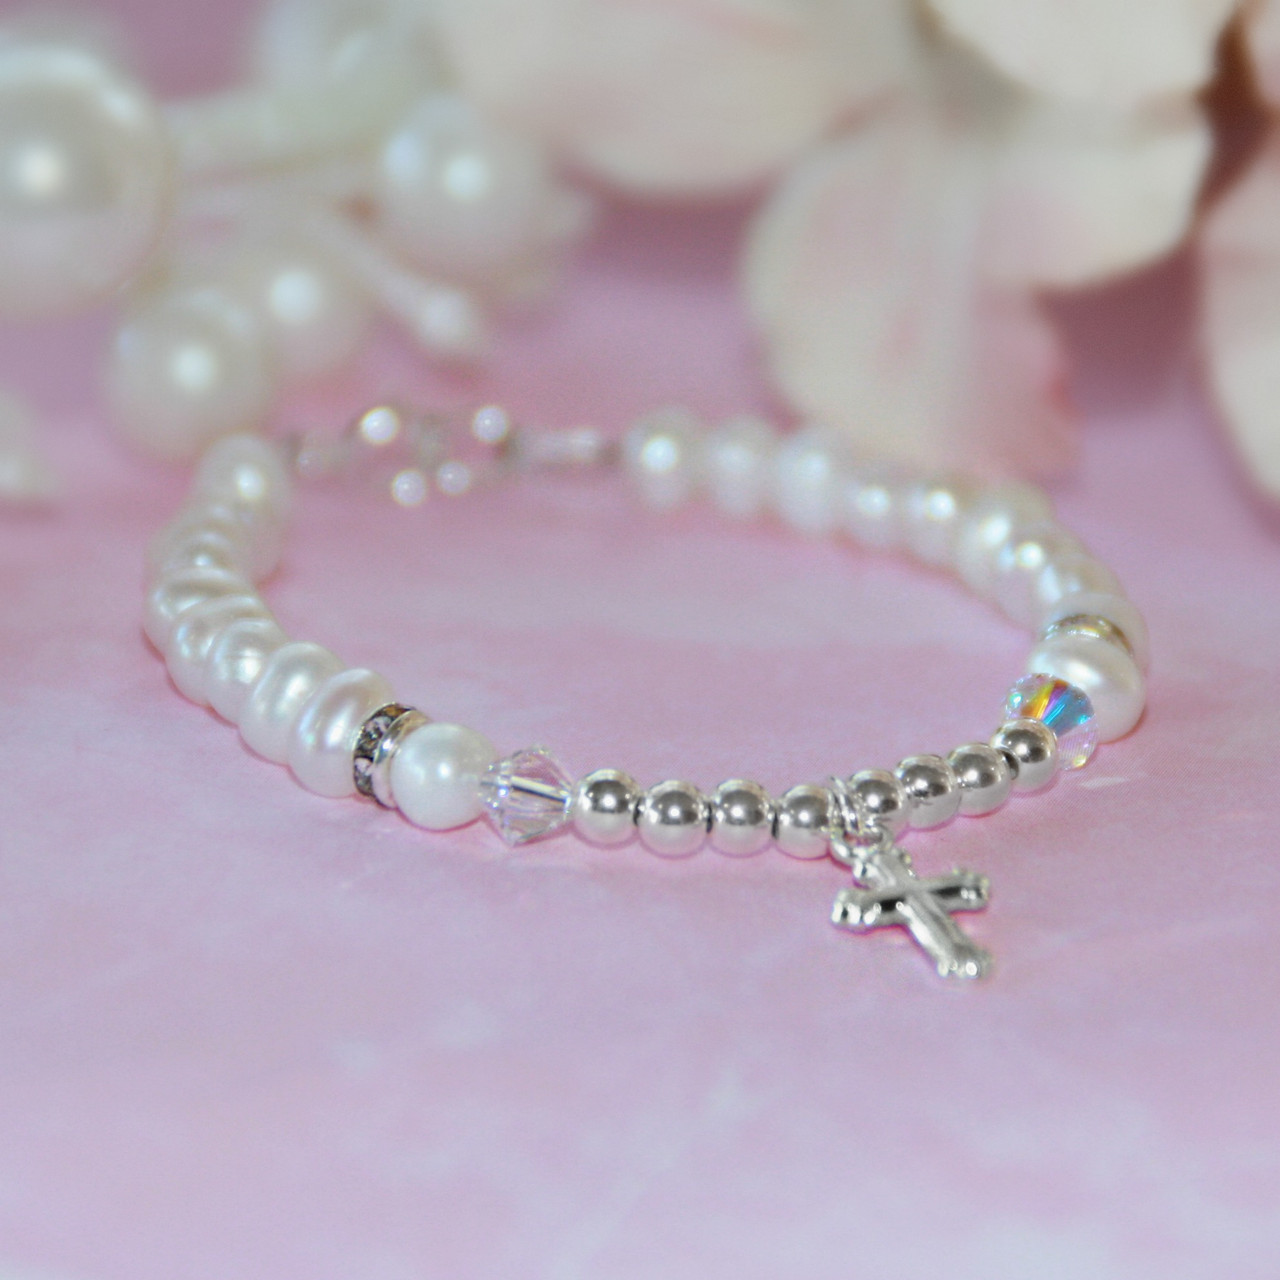 STG-272-4.5  Freshwater Pearls and Sterling Silver Cross Infant Bracelet